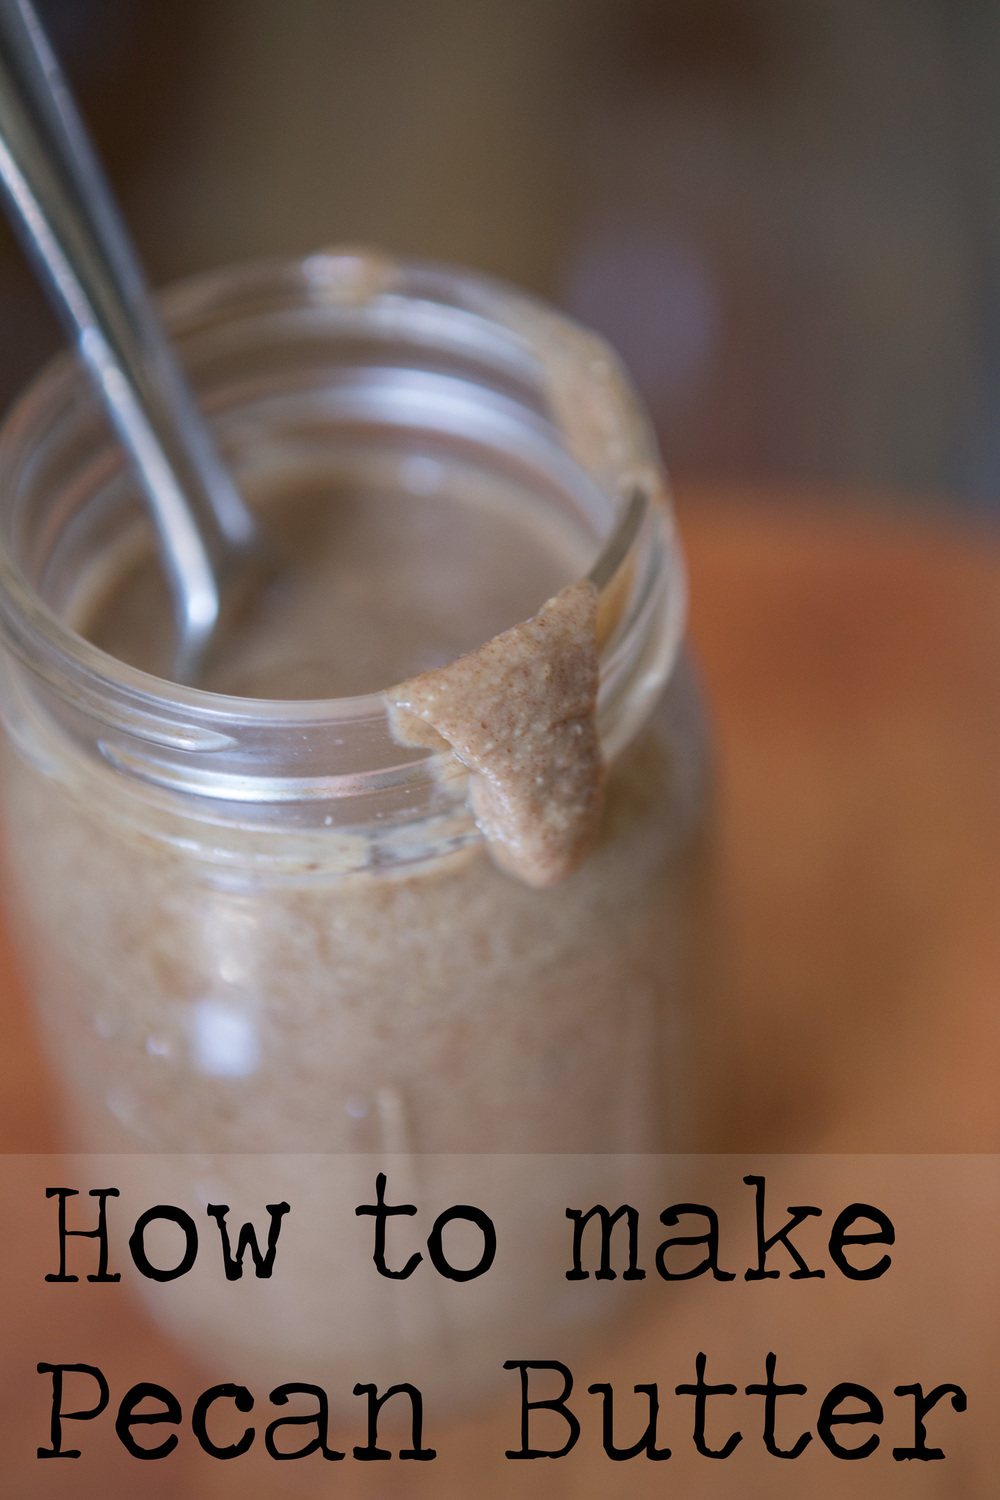 Pin it! How to make pecan butter!